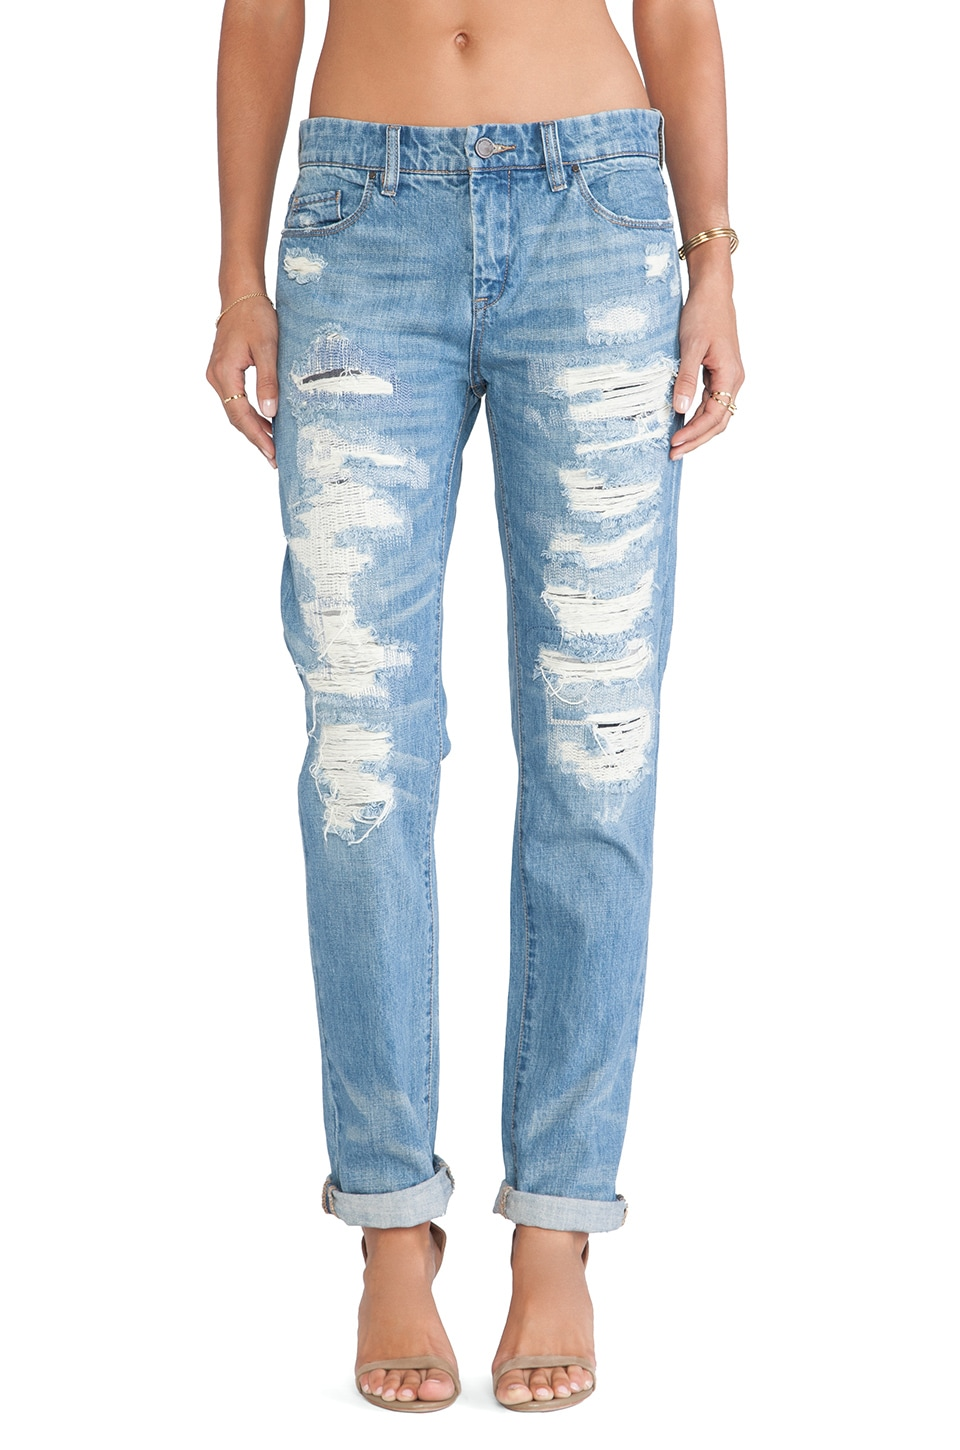 BLANKNYC Boyfriend Jean in Torn to Shreds